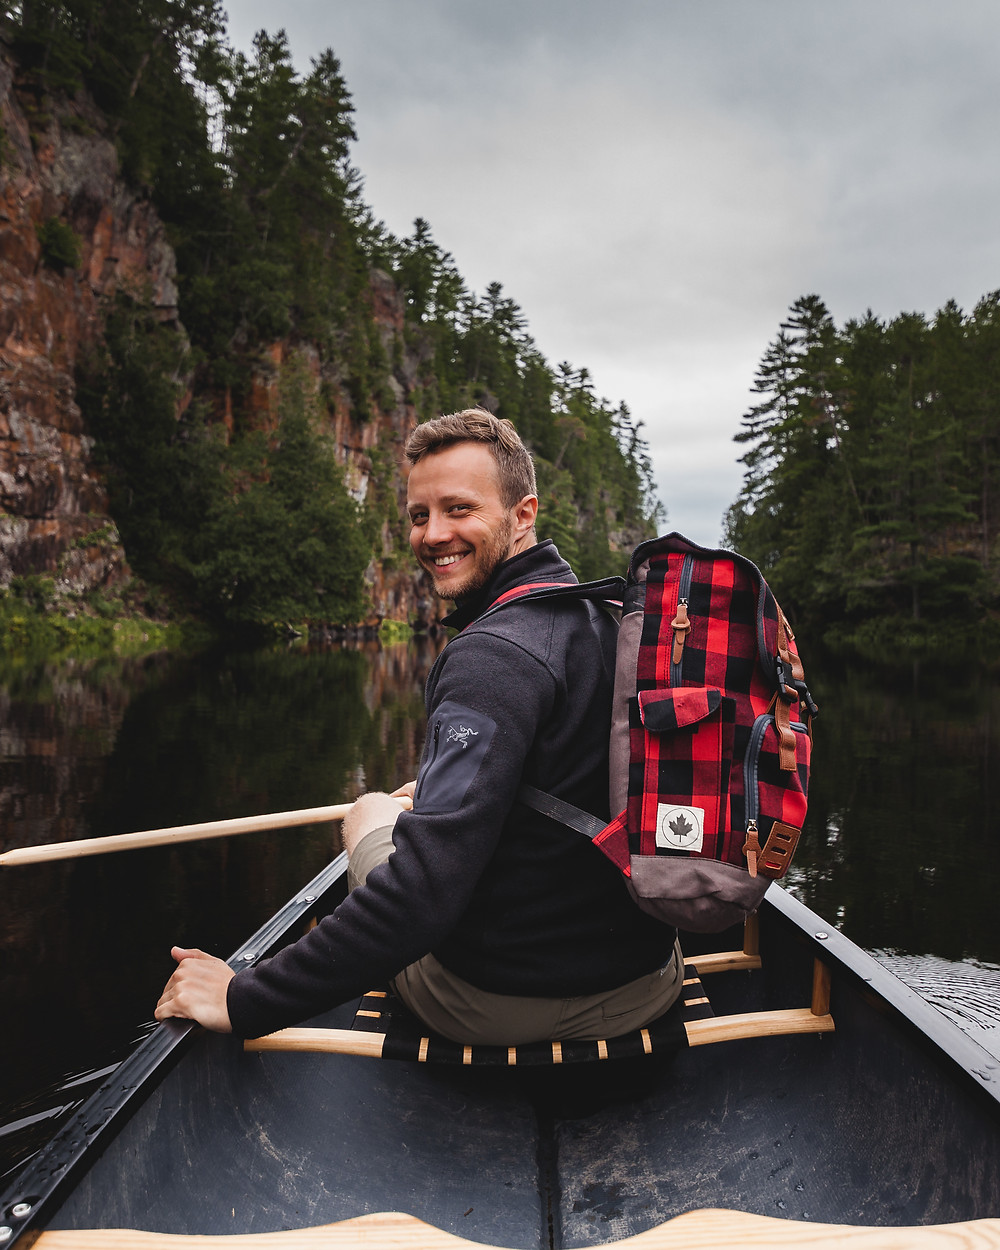 canoeing camping backcountry Algonquin lifestyle photography michael frymus mfvisuals.ca